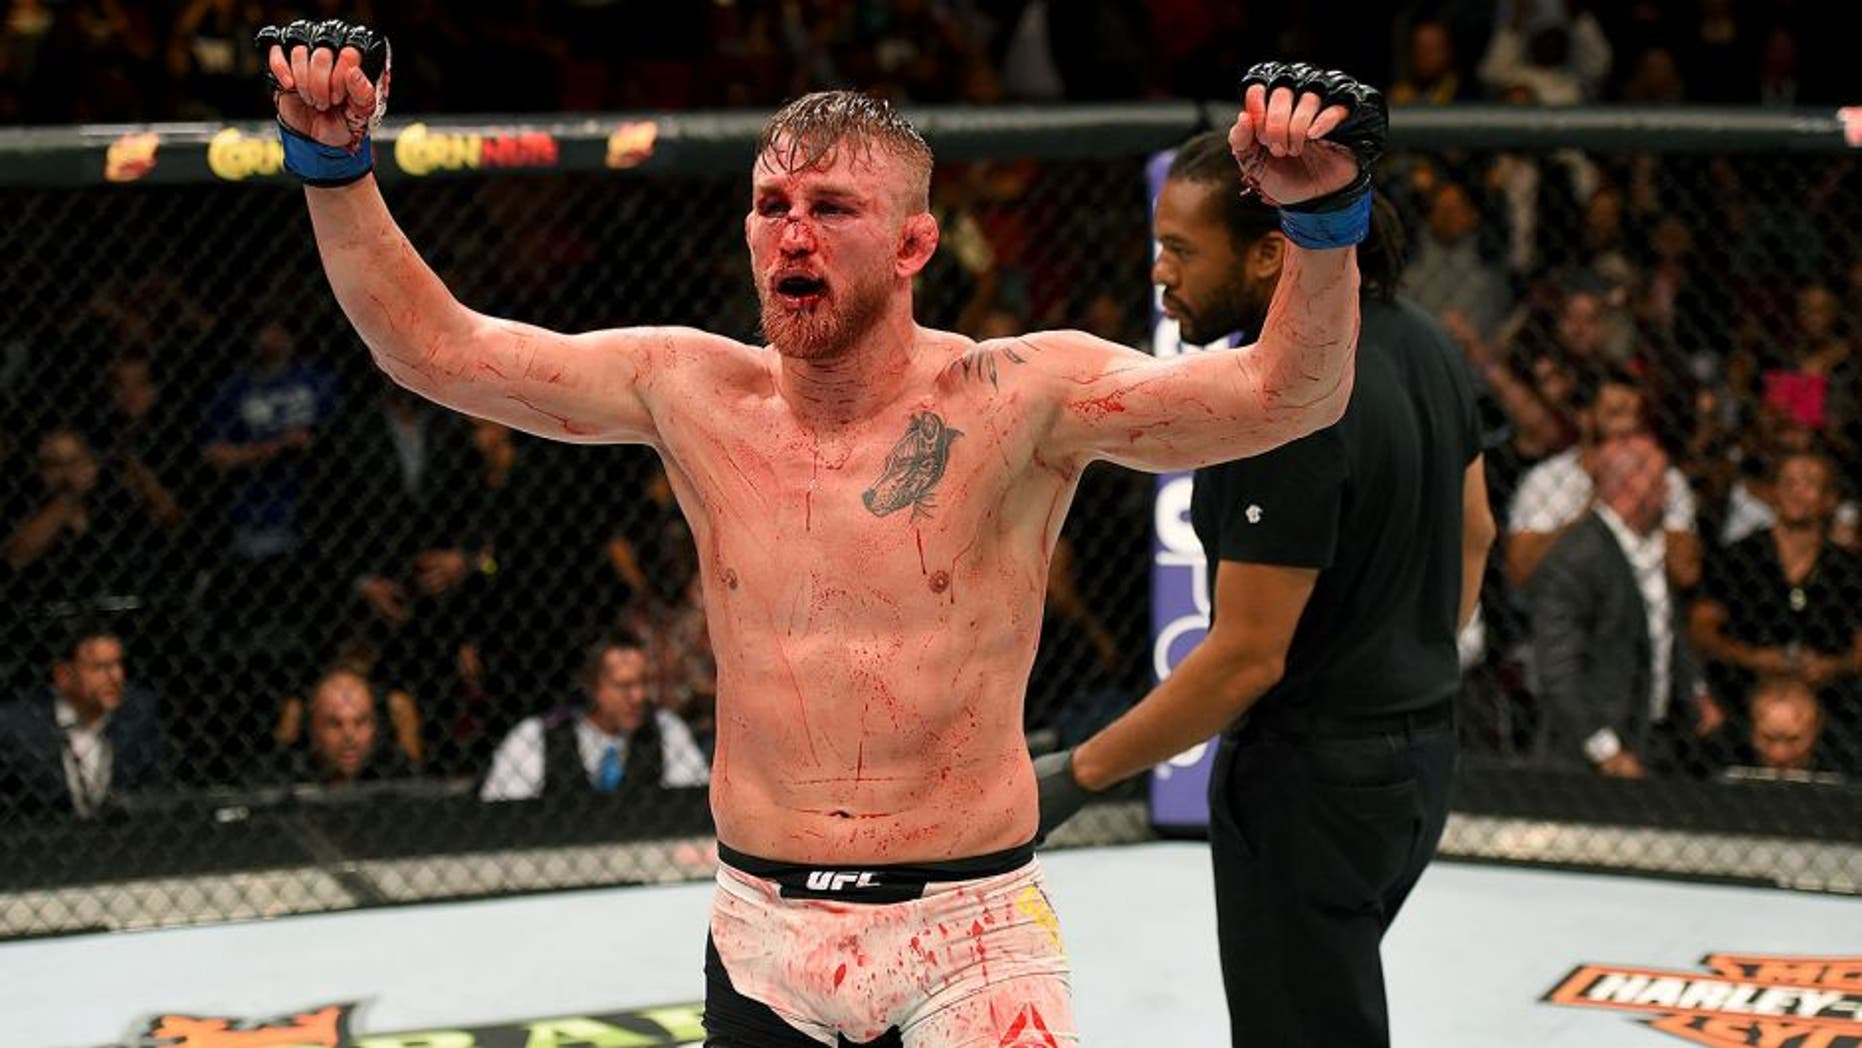 HOUSTON, TX - OCTOBER 03: Alexander Gustafsson raises his hands after facing Daniel Cormier in their UFC light heavyweight championship bout during the UFC 192 event at the Toyota Center on October 3, 2015 in Houston, Texas. (Photo by Josh Hedges/Zuffa LLC/Zuffa LLC via Getty Images)